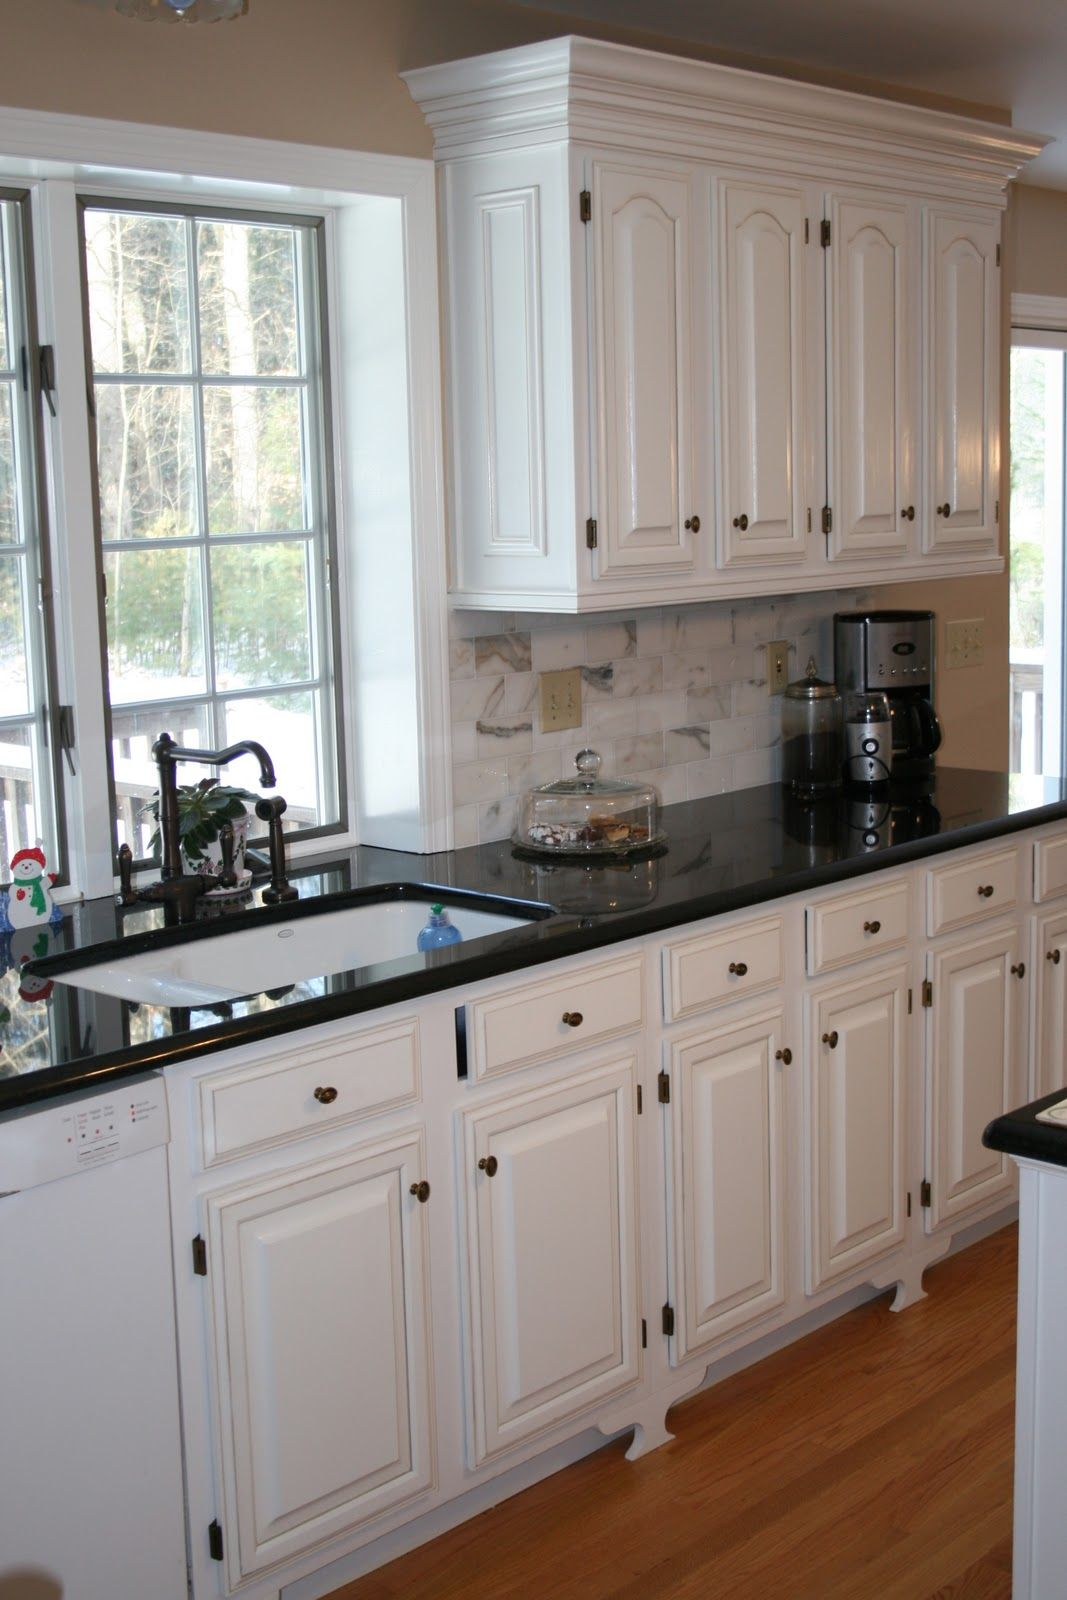 White Cabinets Black Countertops And